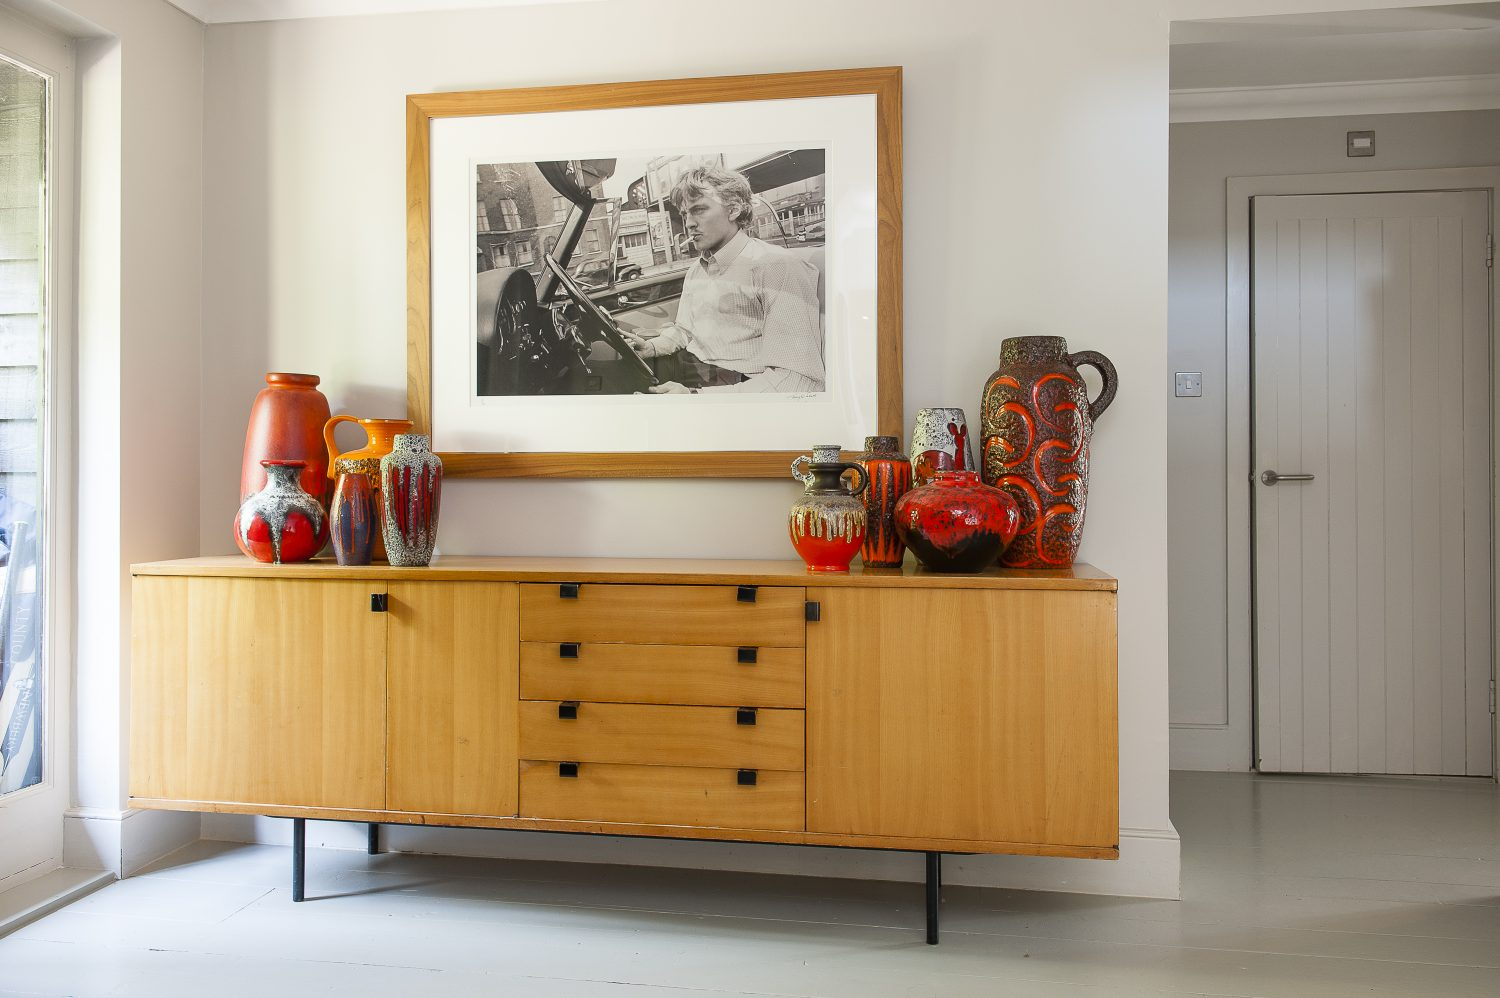 A collection of vintage German pottery in warm shades of orange and red complements the honey-toned sideboard in the hallway downstairs Left: Artwork for Ozzy Osbourne's album No Rest for the Wicked, for which John was Creative Director, is framed in an ornate gilded frame